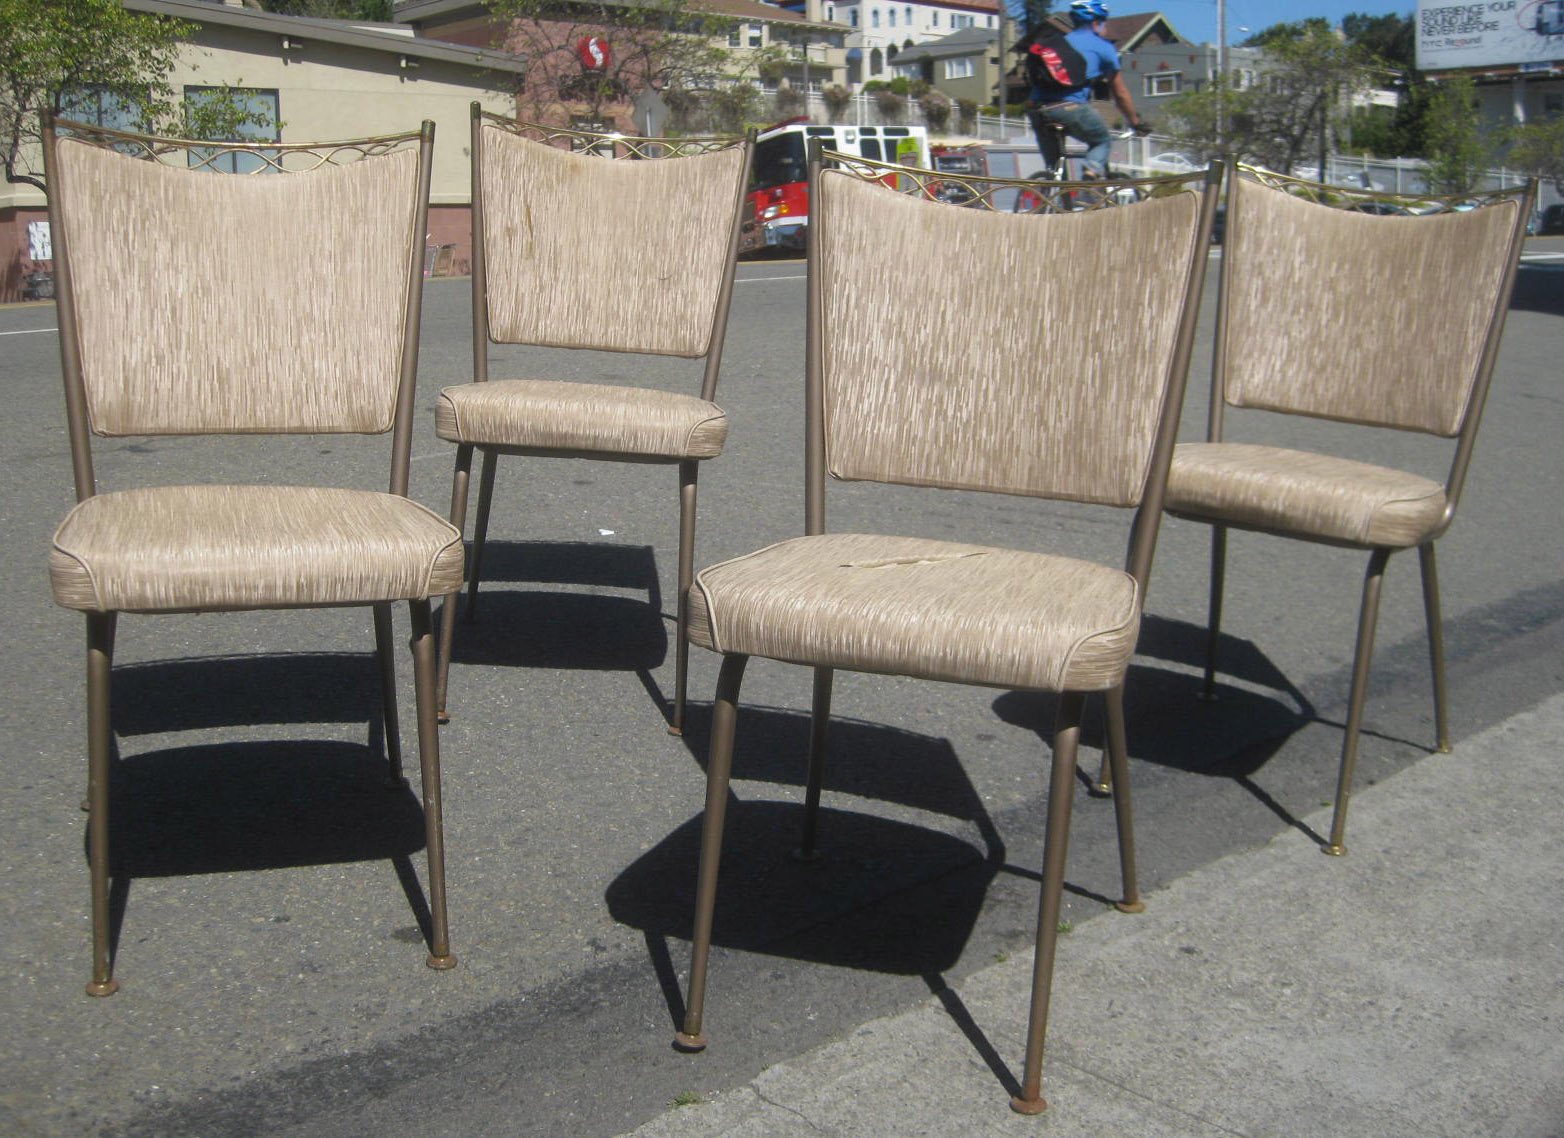 Retro Kitchen Chairs Uhuru Furniture And Collectibles Sold 4 Retro Kitchen